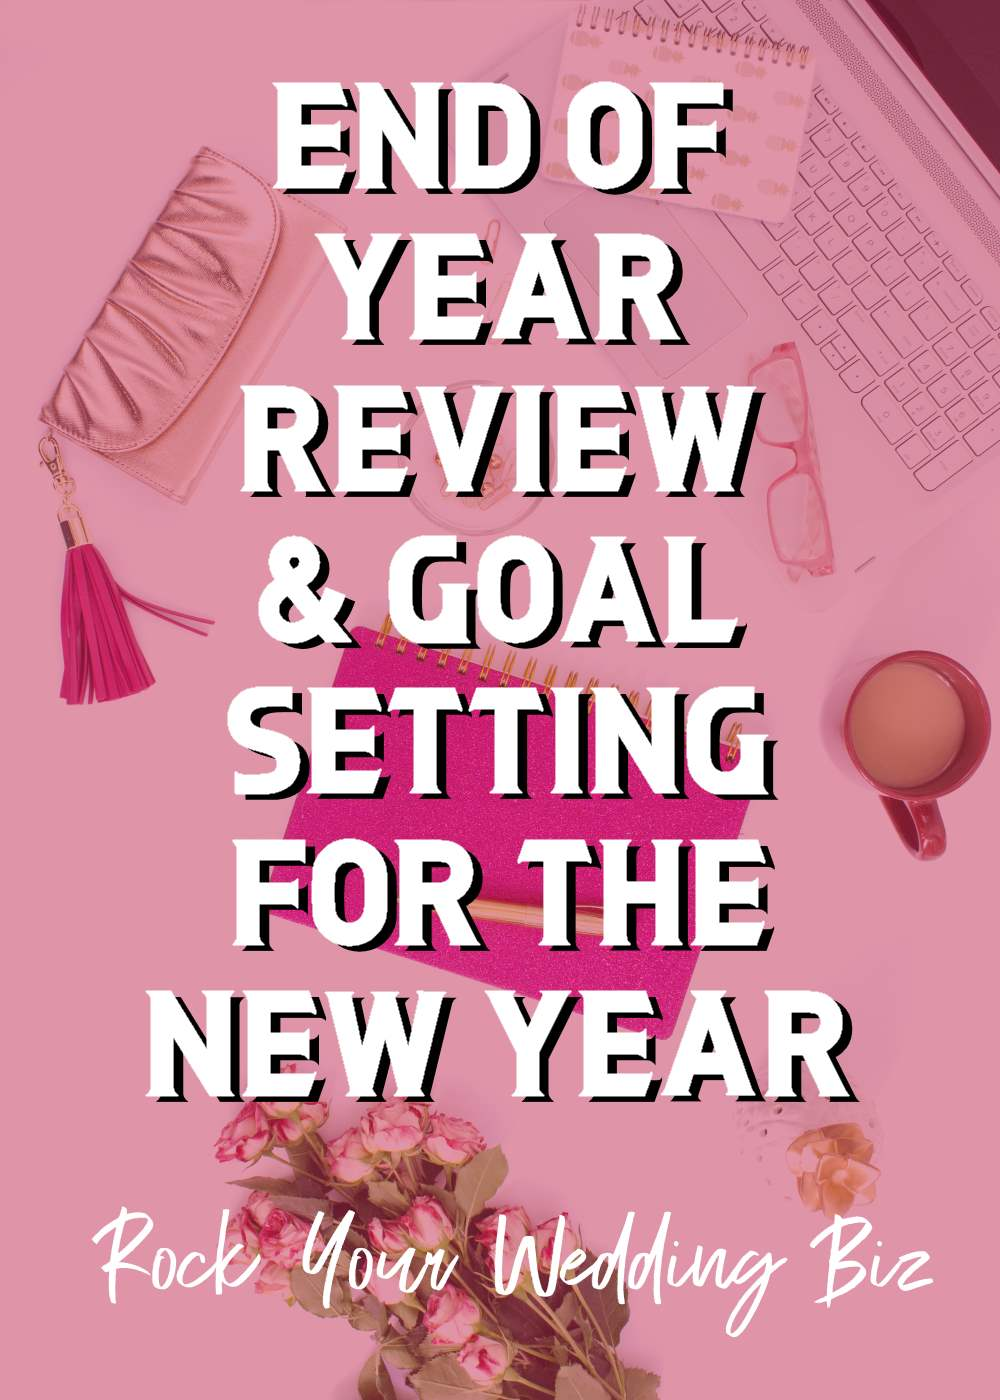 Episode 29 - End of Year Review and Goal Setting for the New Year